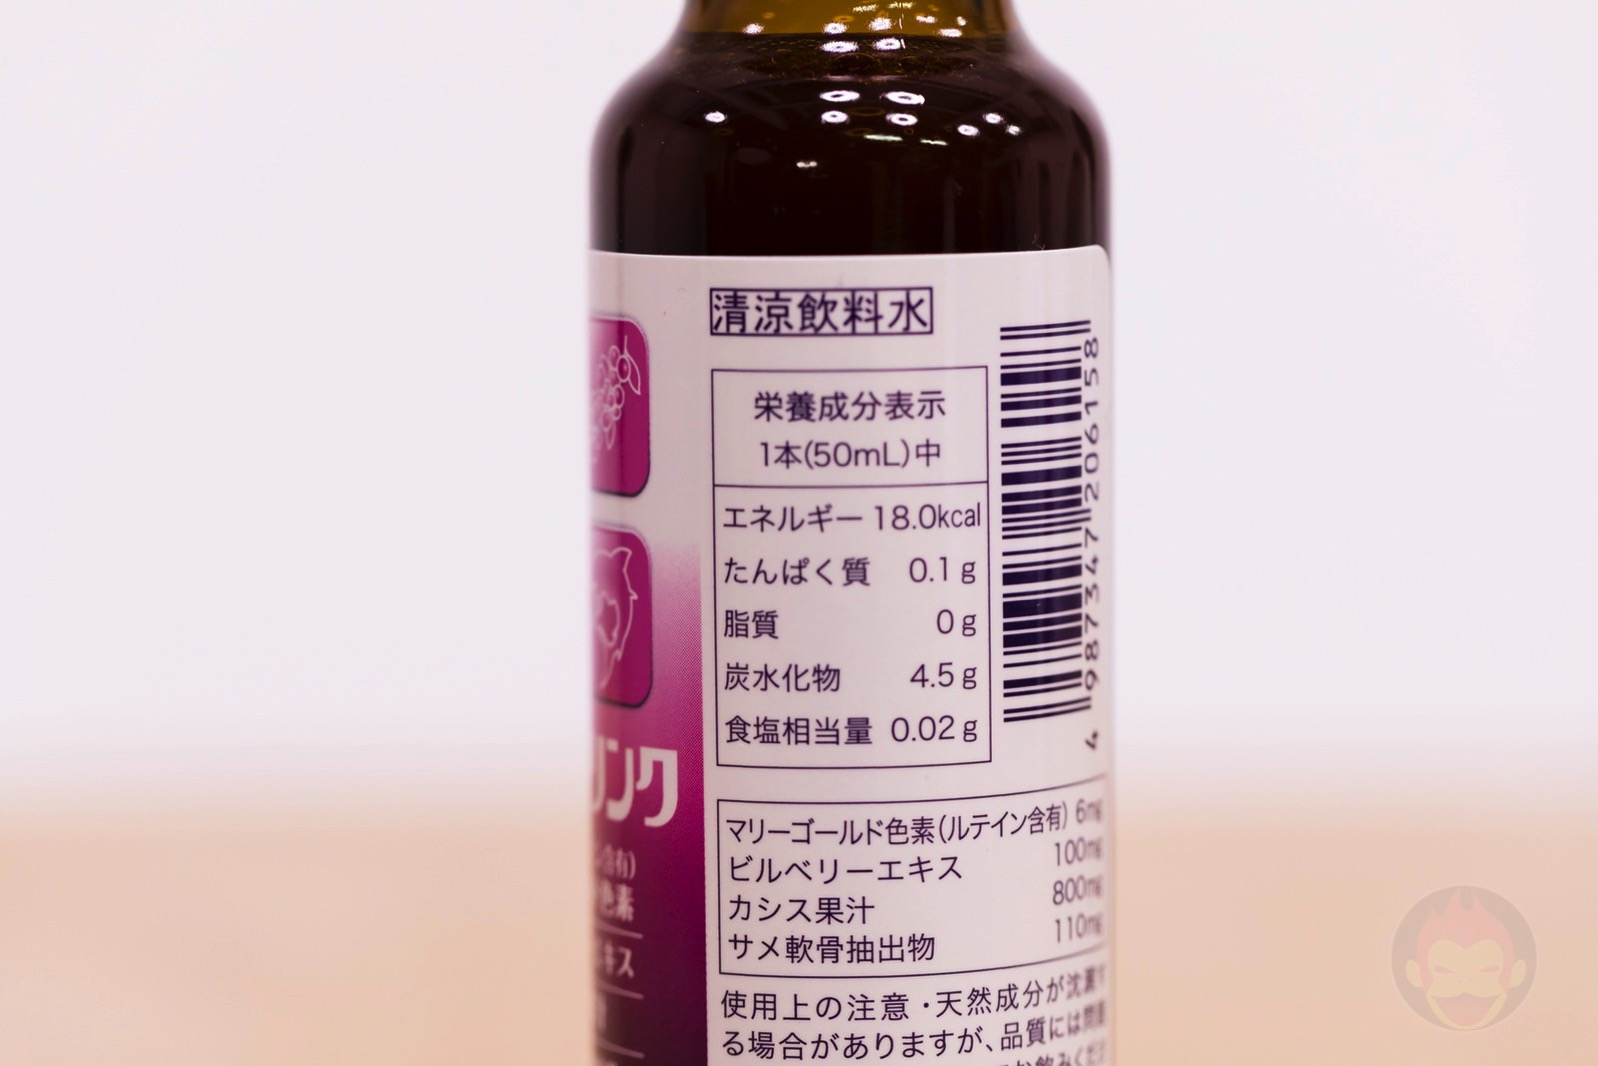 sumaho-drink-03.jpg